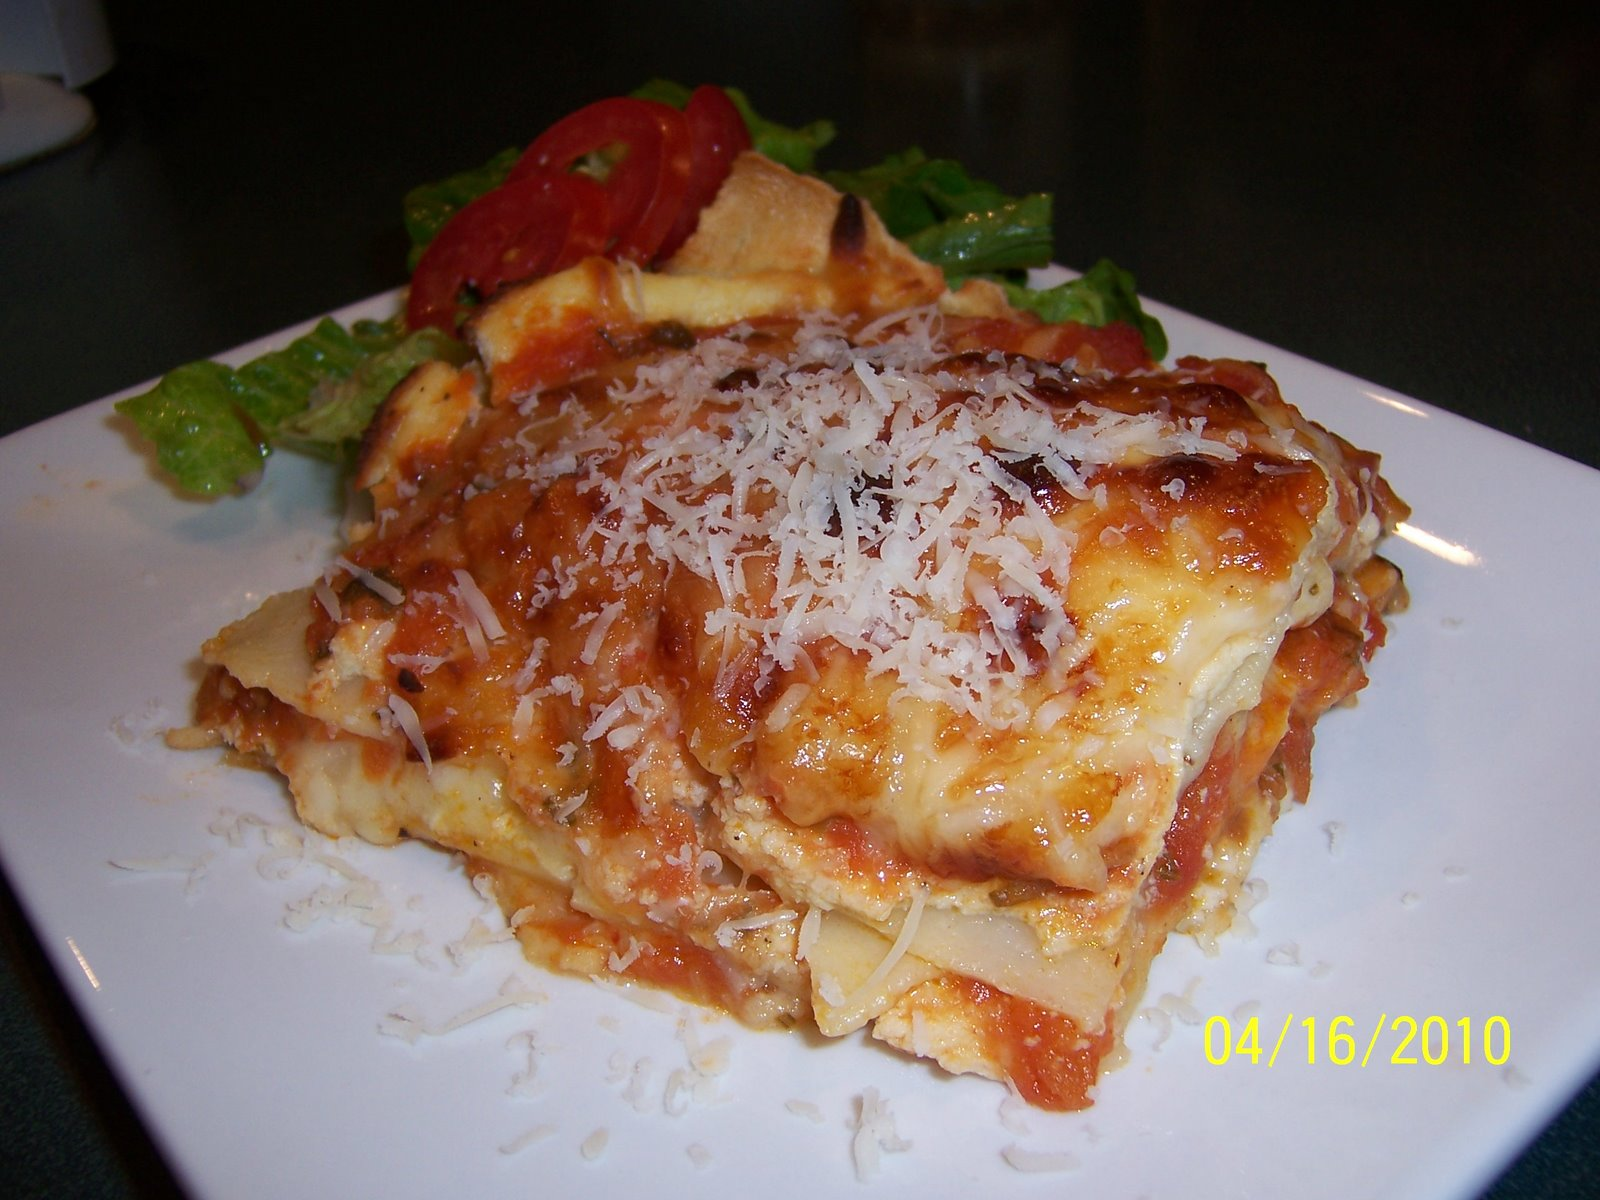 The Culinary Enthusiast: Four Cheese Lasagna